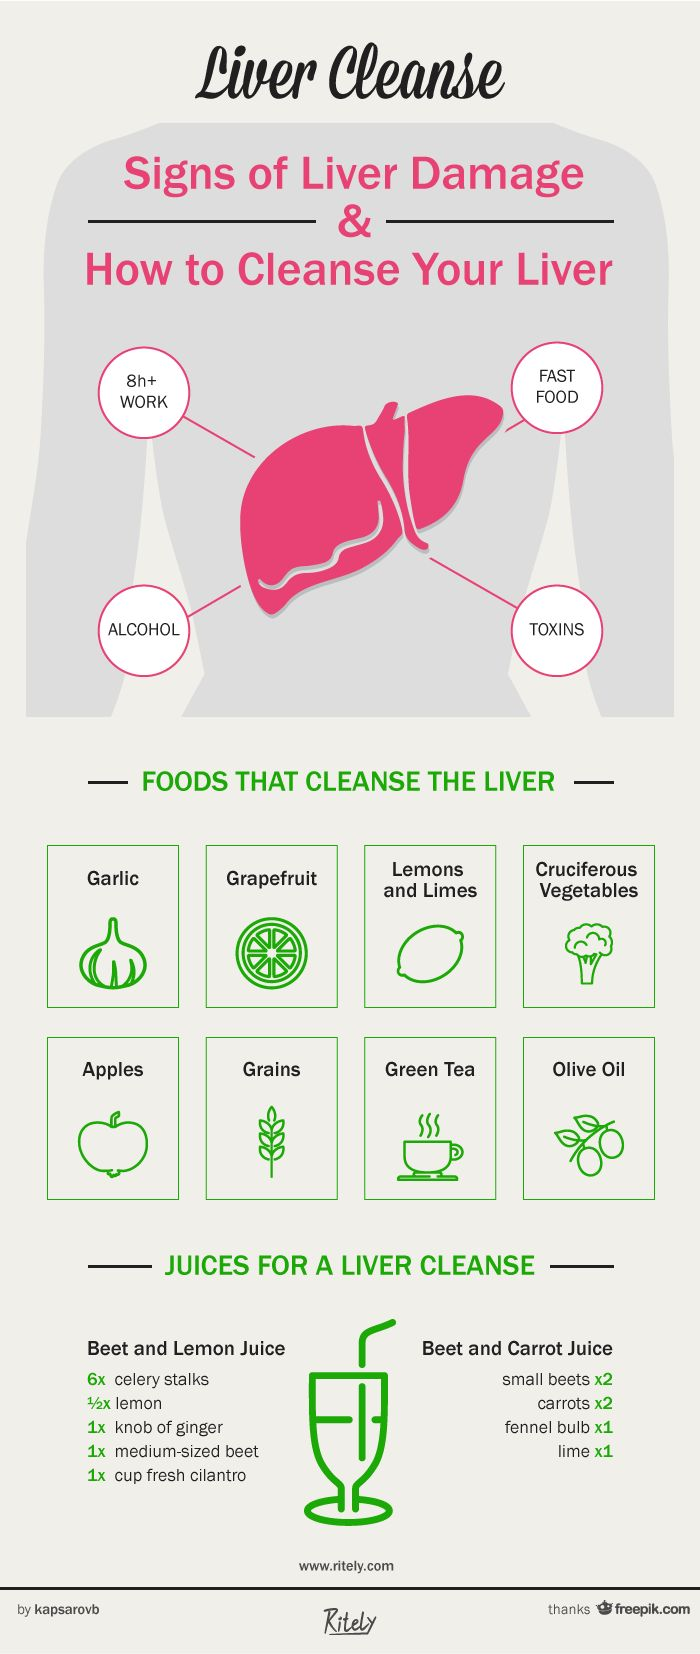 17 Best Ideas About Liver Cleanse On Pinterest Liver